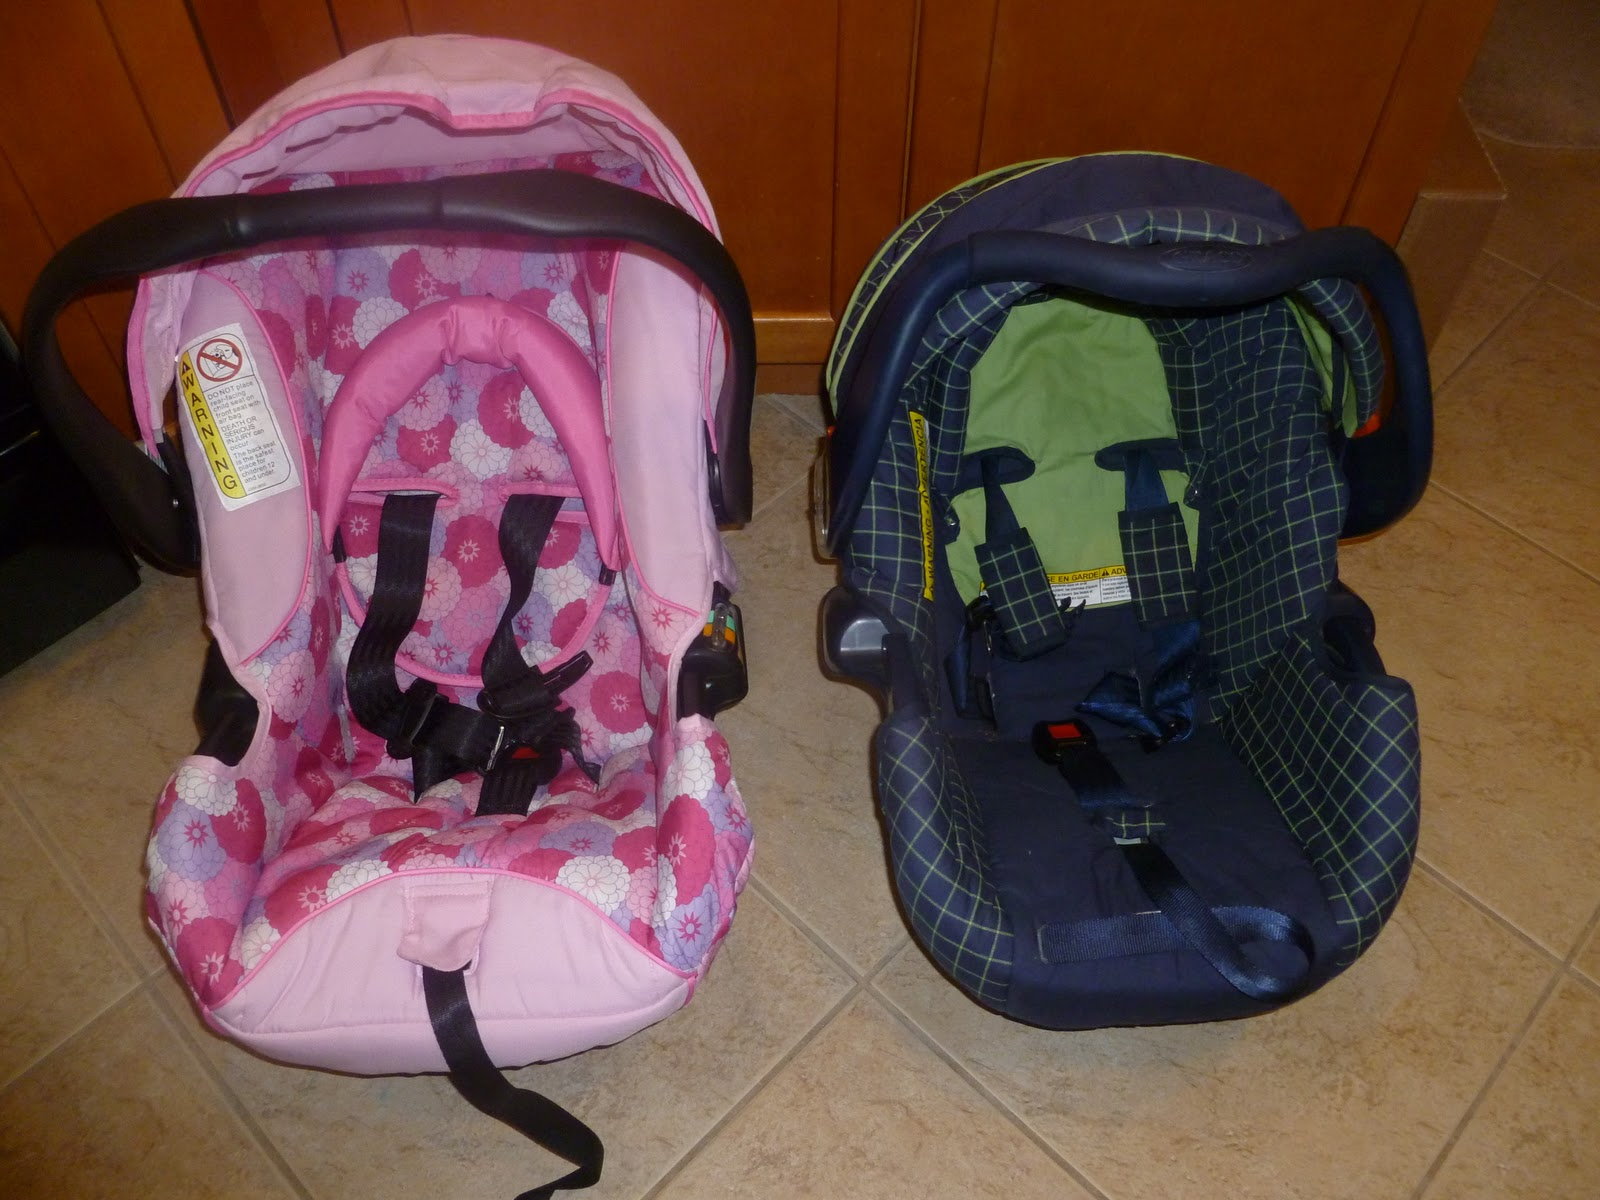 SAFETY 1ST ONBOARD 35 INFANT CAR SEAT (goes up to 35 lbs!) REVIEW ...